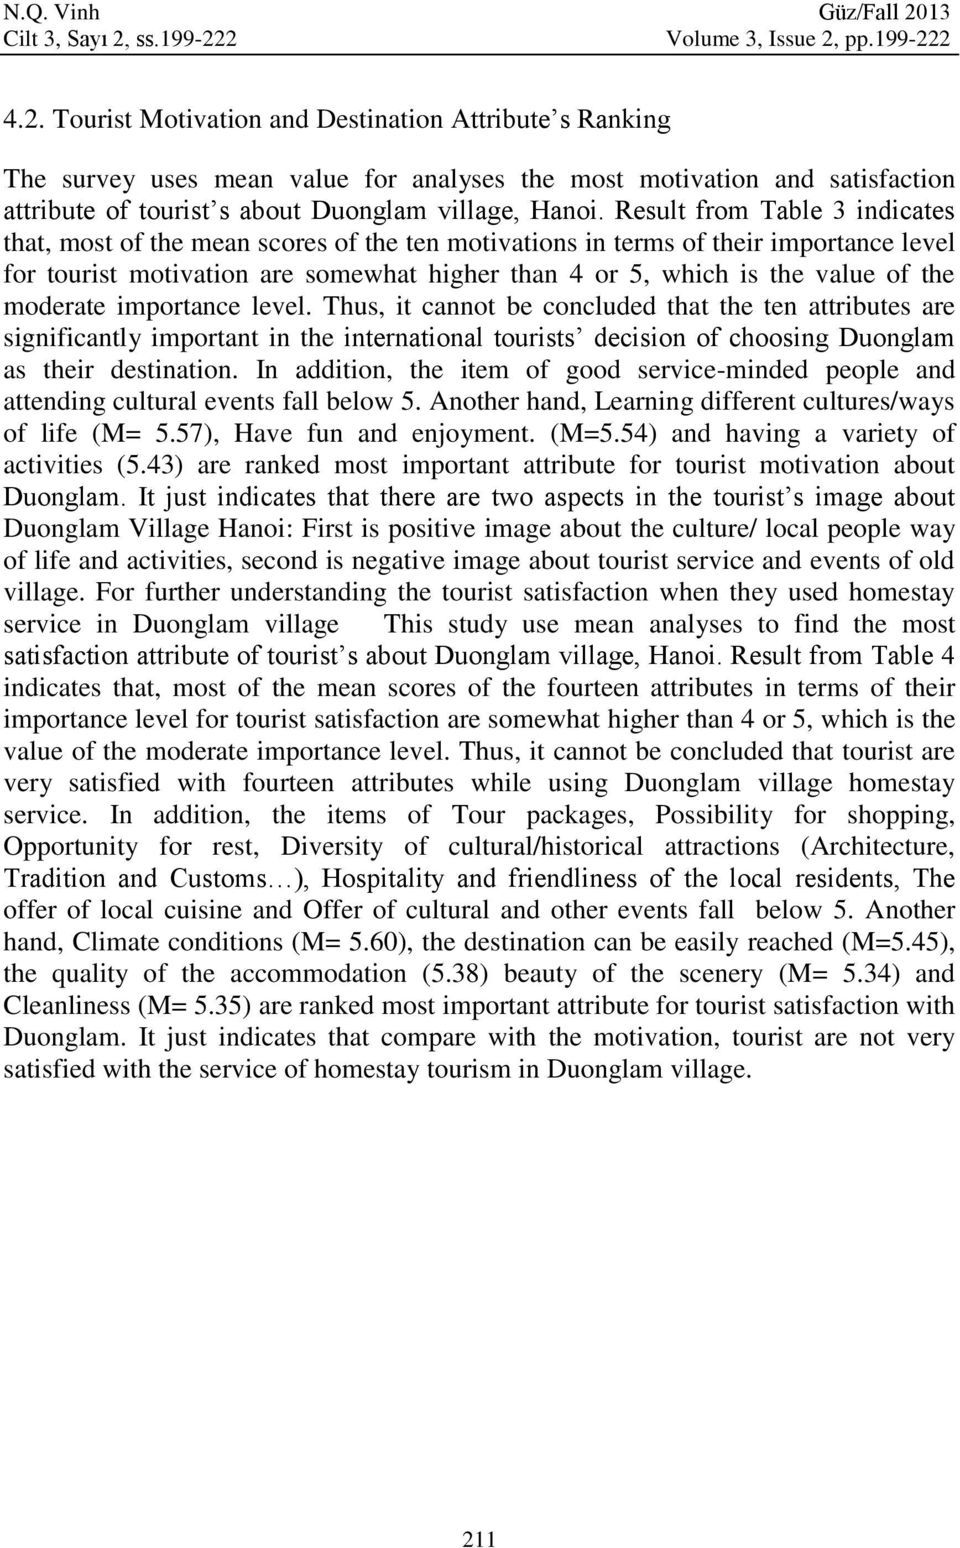 ss.199-222 Volume 3, Issue 2, pp.199-222 4.2. Tourist Motivation and Destination Attribute s Ranking The survey uses mean value for analyses the most motivation and satisfaction attribute of tourist s about Duonglam village, Hanoi.